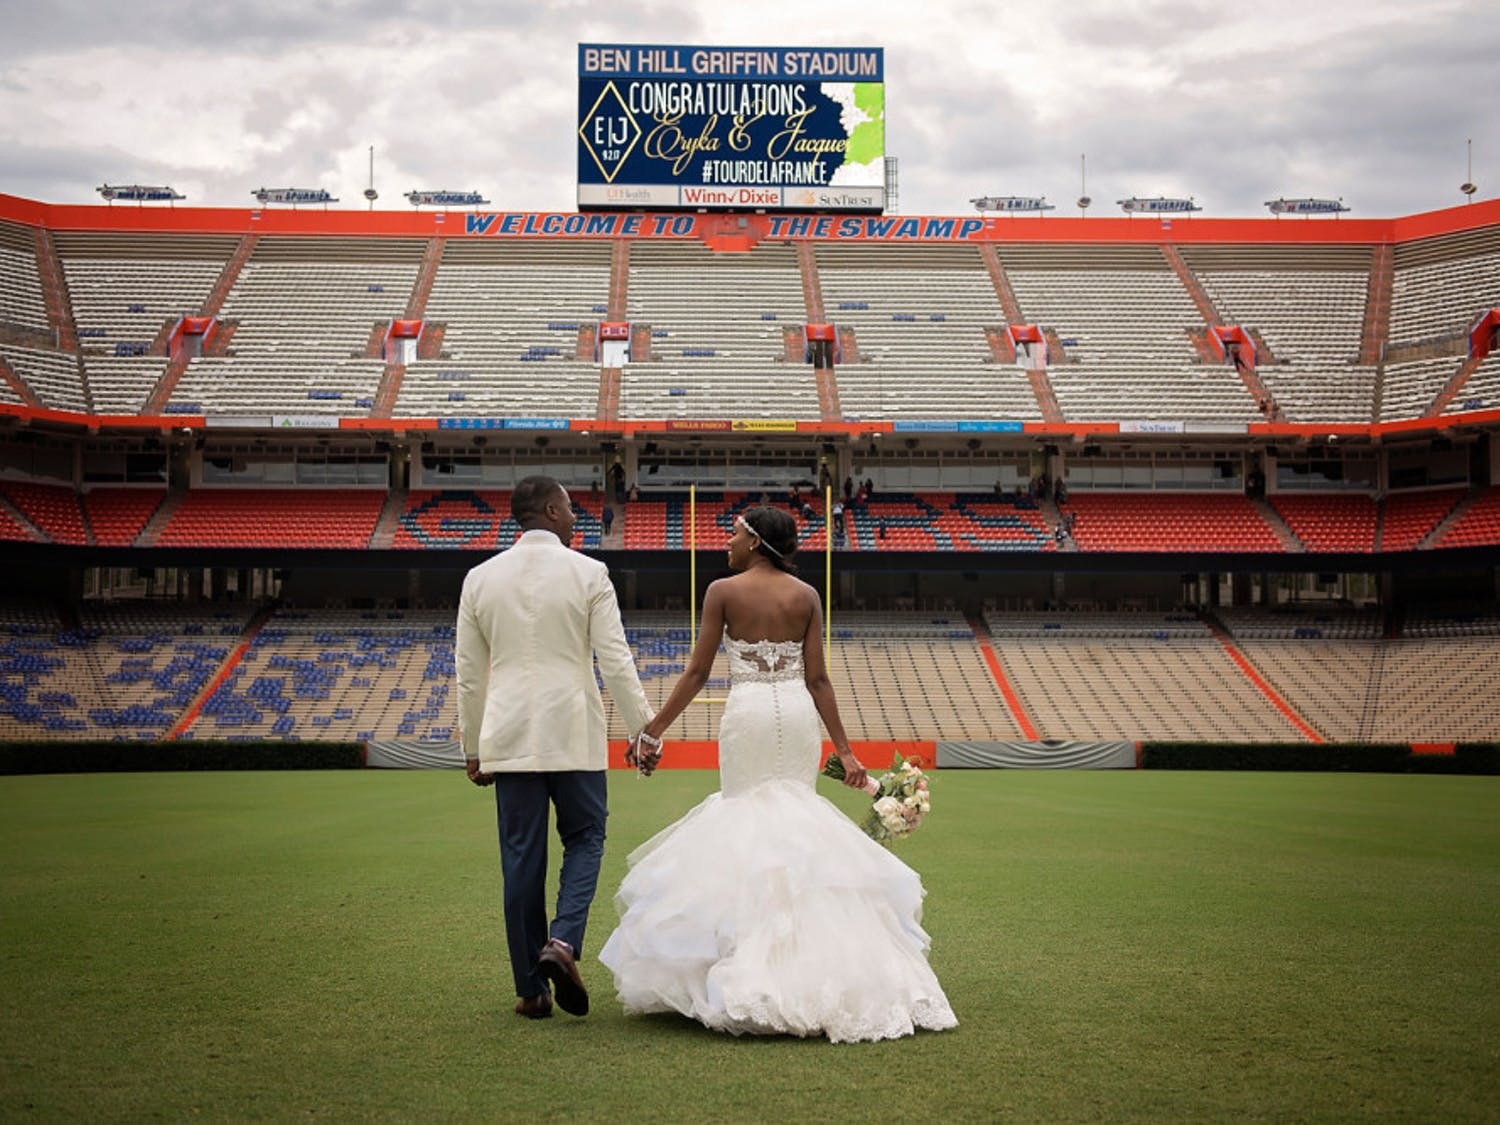 Eryka and Jacques LaFrance held their wedding ceremony in the Ben Hill Griffin Stadium on Sept. 2, 2017. Eryka LaFrance grew up in Gainesville and wanted to get married in a place close to her heart and childhood.